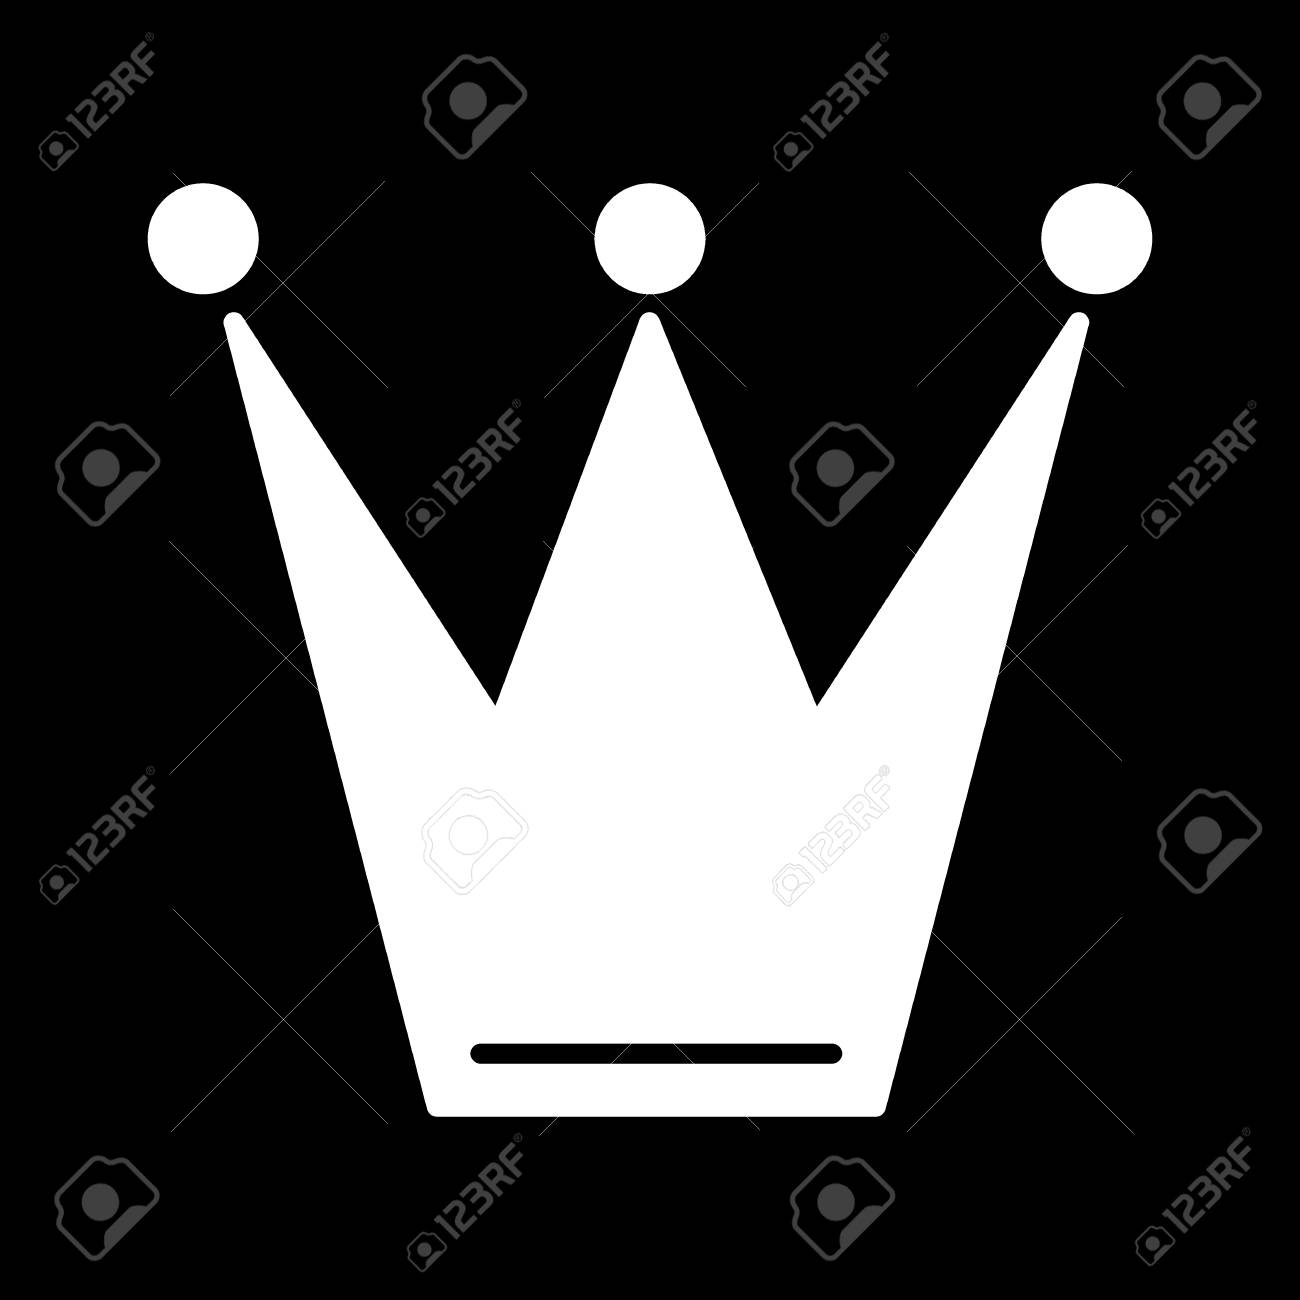 Crown Icon In Trendy Flat Style Isolated On Black Background